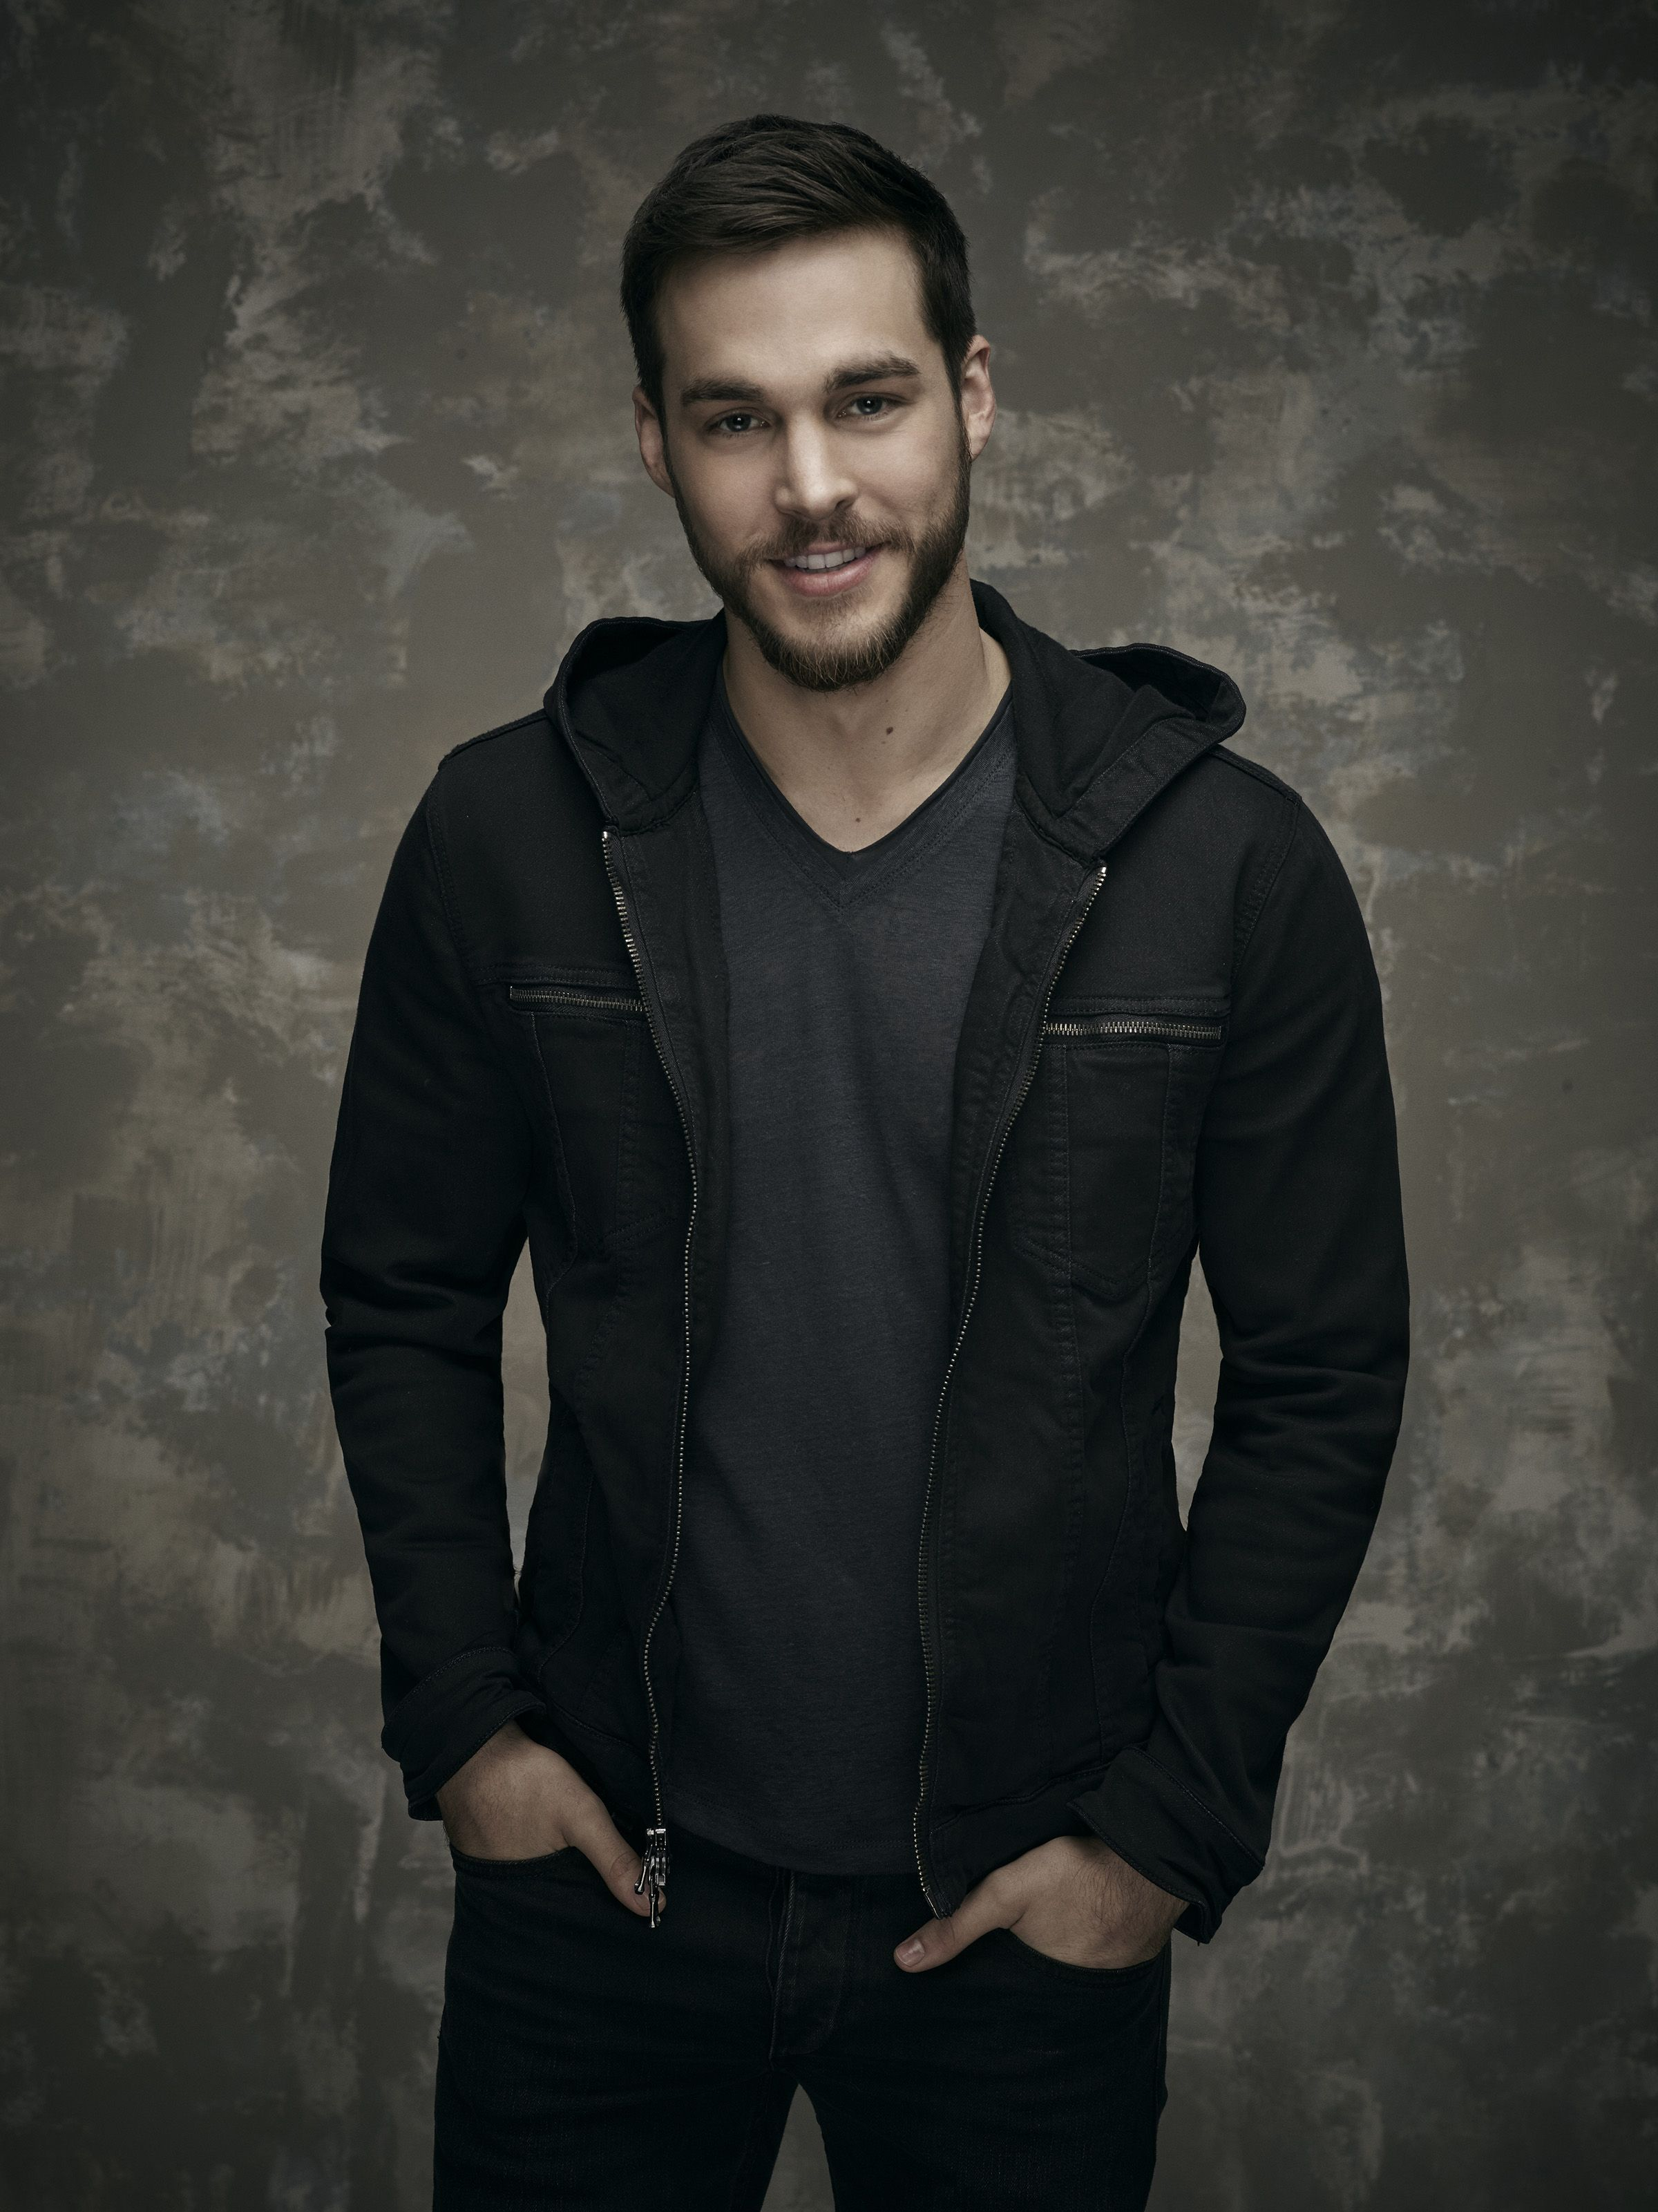 Containment Limited Series Event Chris Wood As Jake Chris Wood Homens Bonitos Supergirl